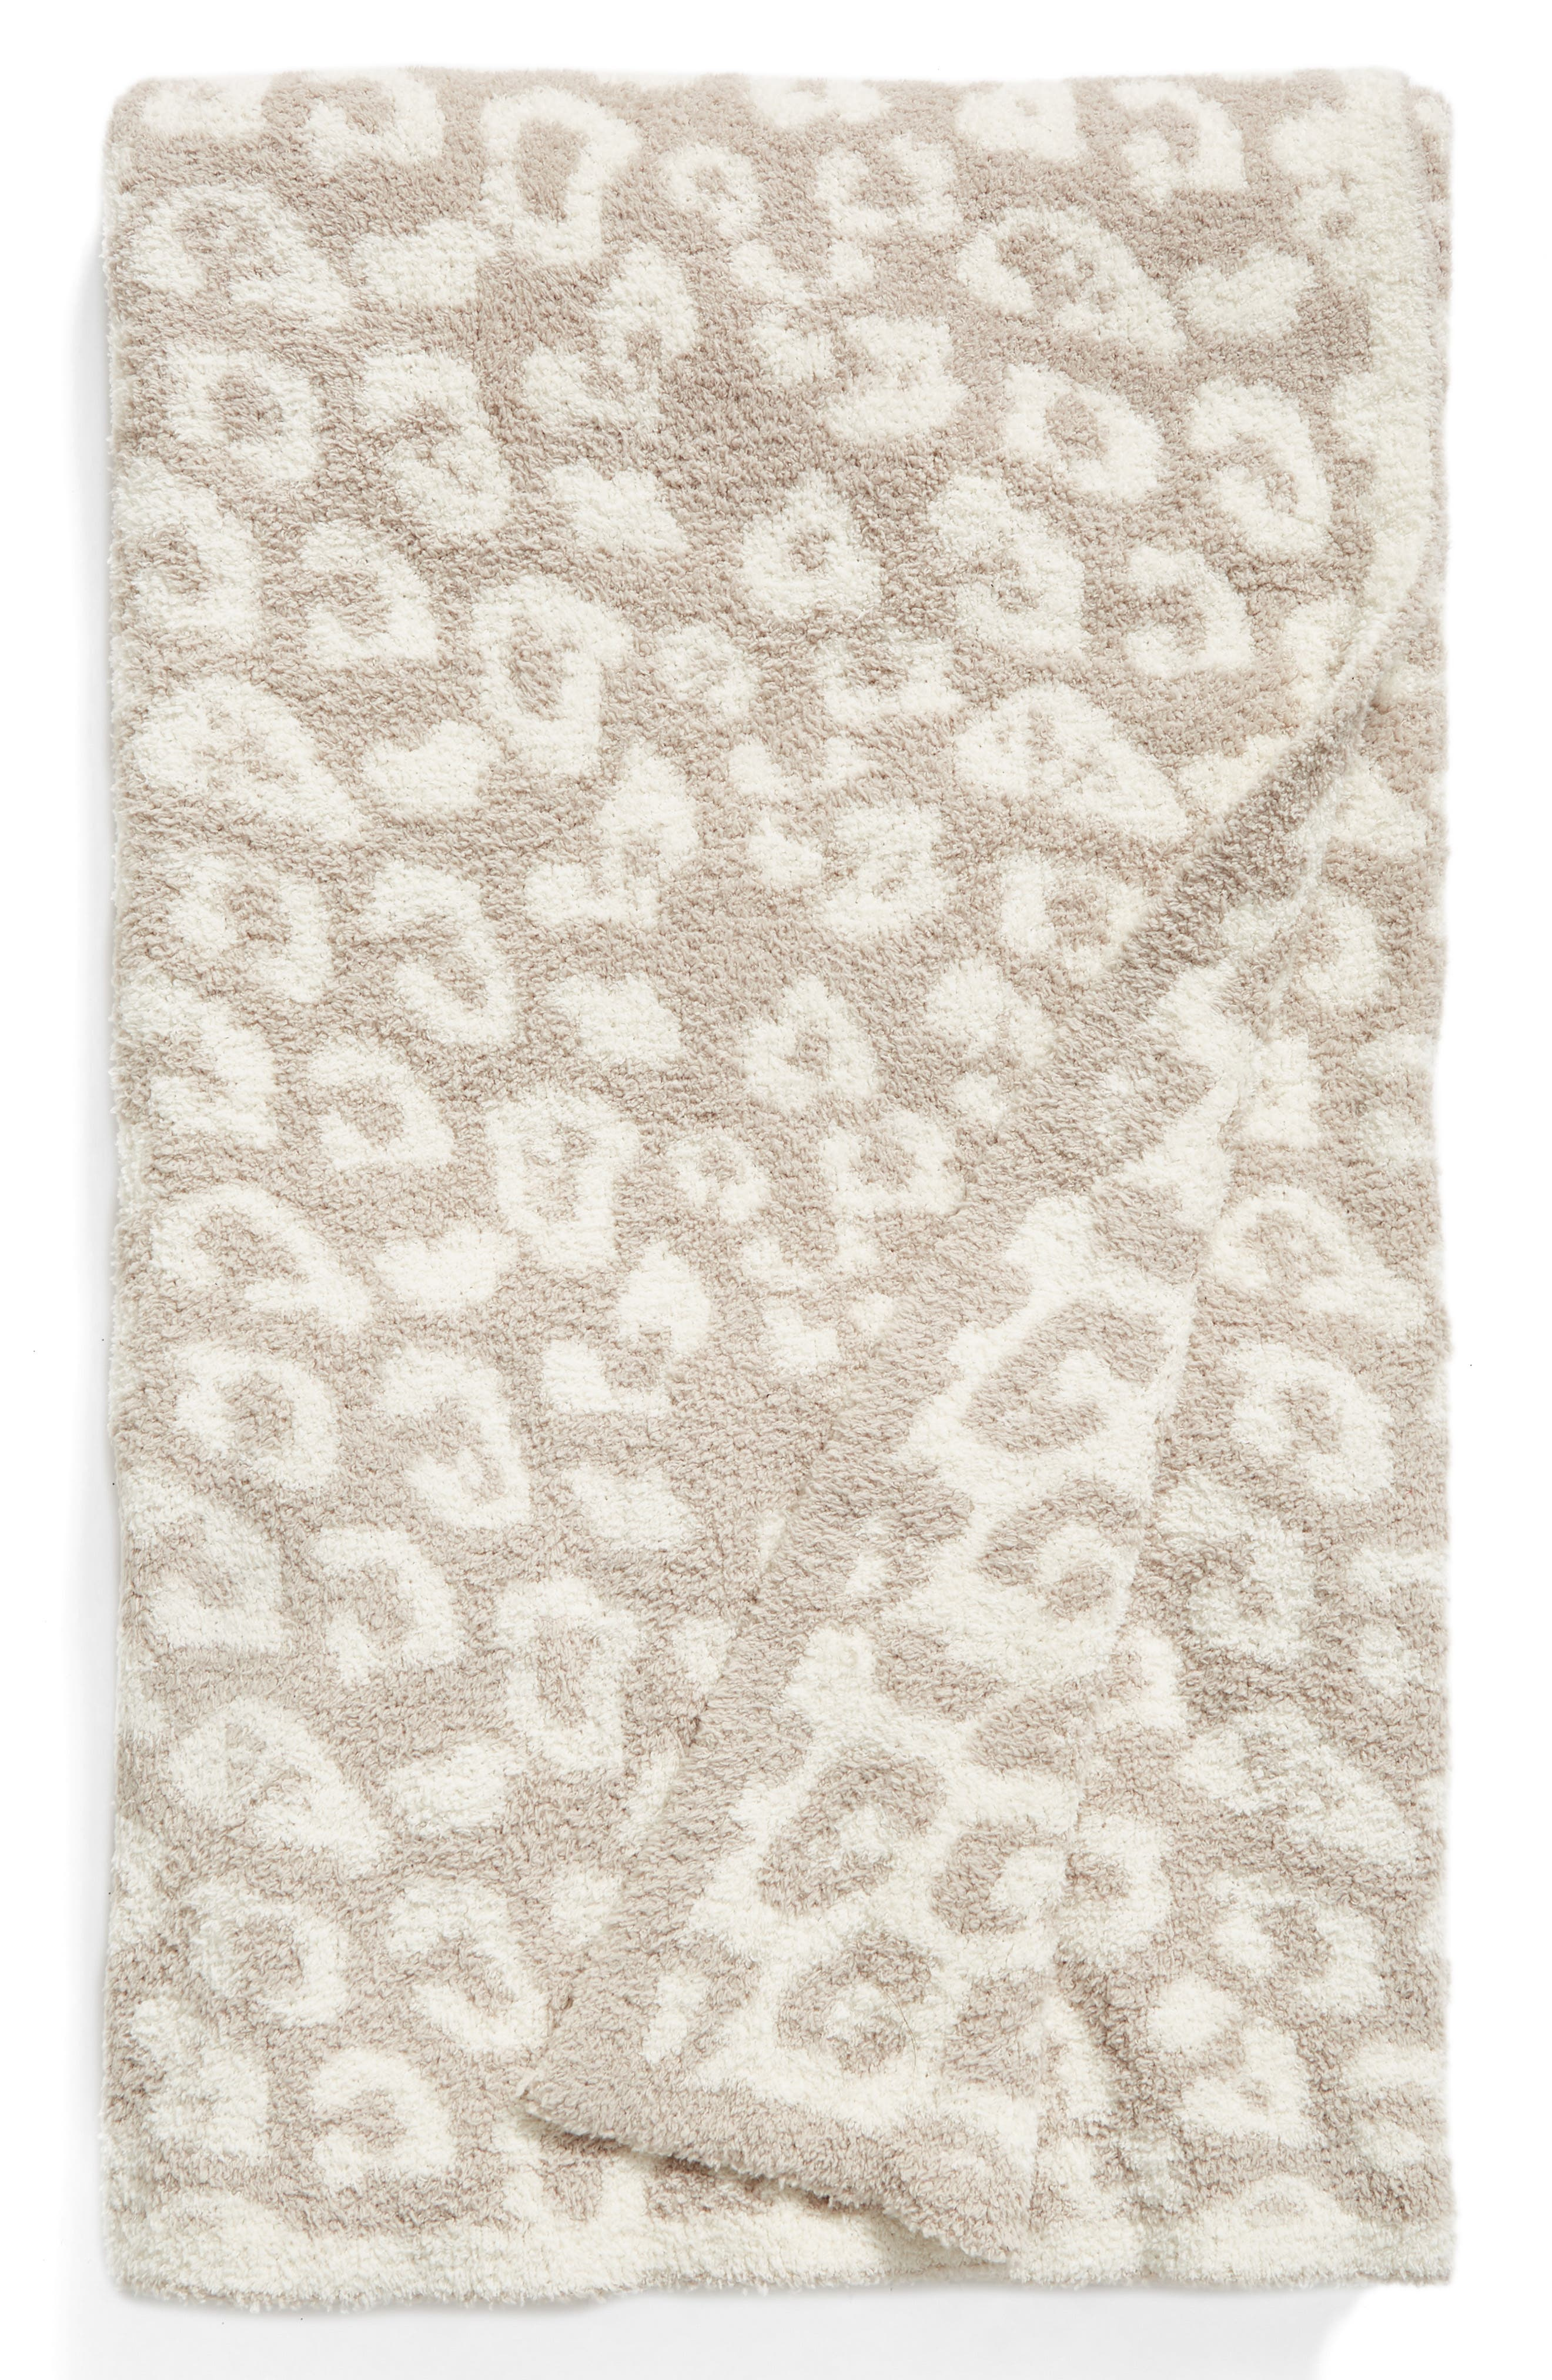 CozyChic 'In the Wild' Throw Blanket,                             Main thumbnail 1, color,                             STONE/ CREAM